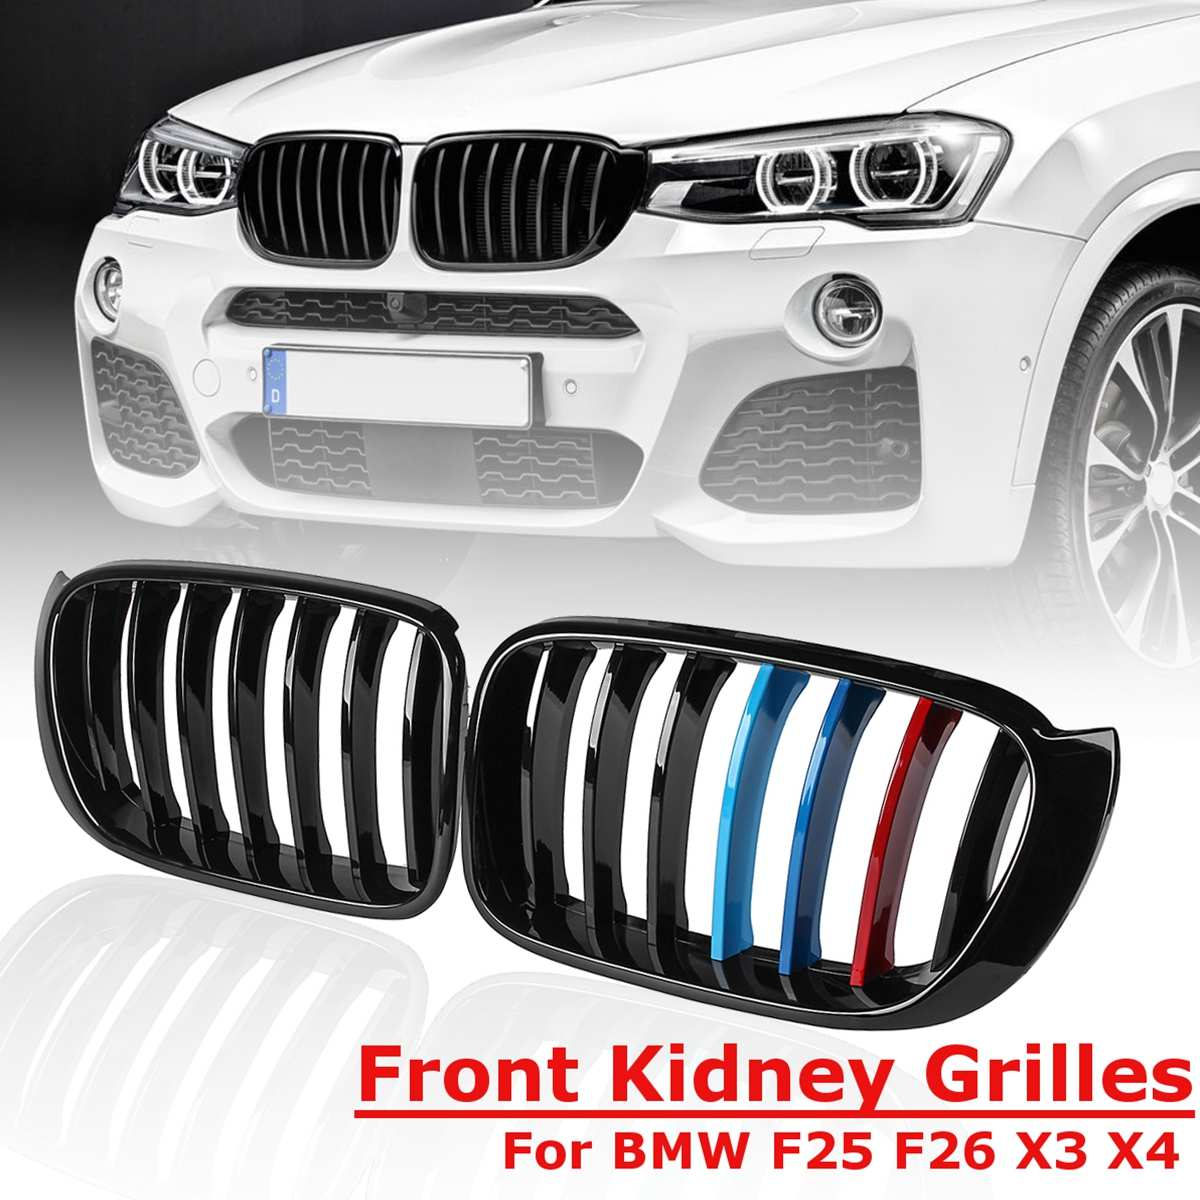 New Pair Front Kidney Grill Grille For BMW X3 F25 X4 F26 2014 2015 2016 2017 Gloss Matt Black M color 1 slat line Car Styling